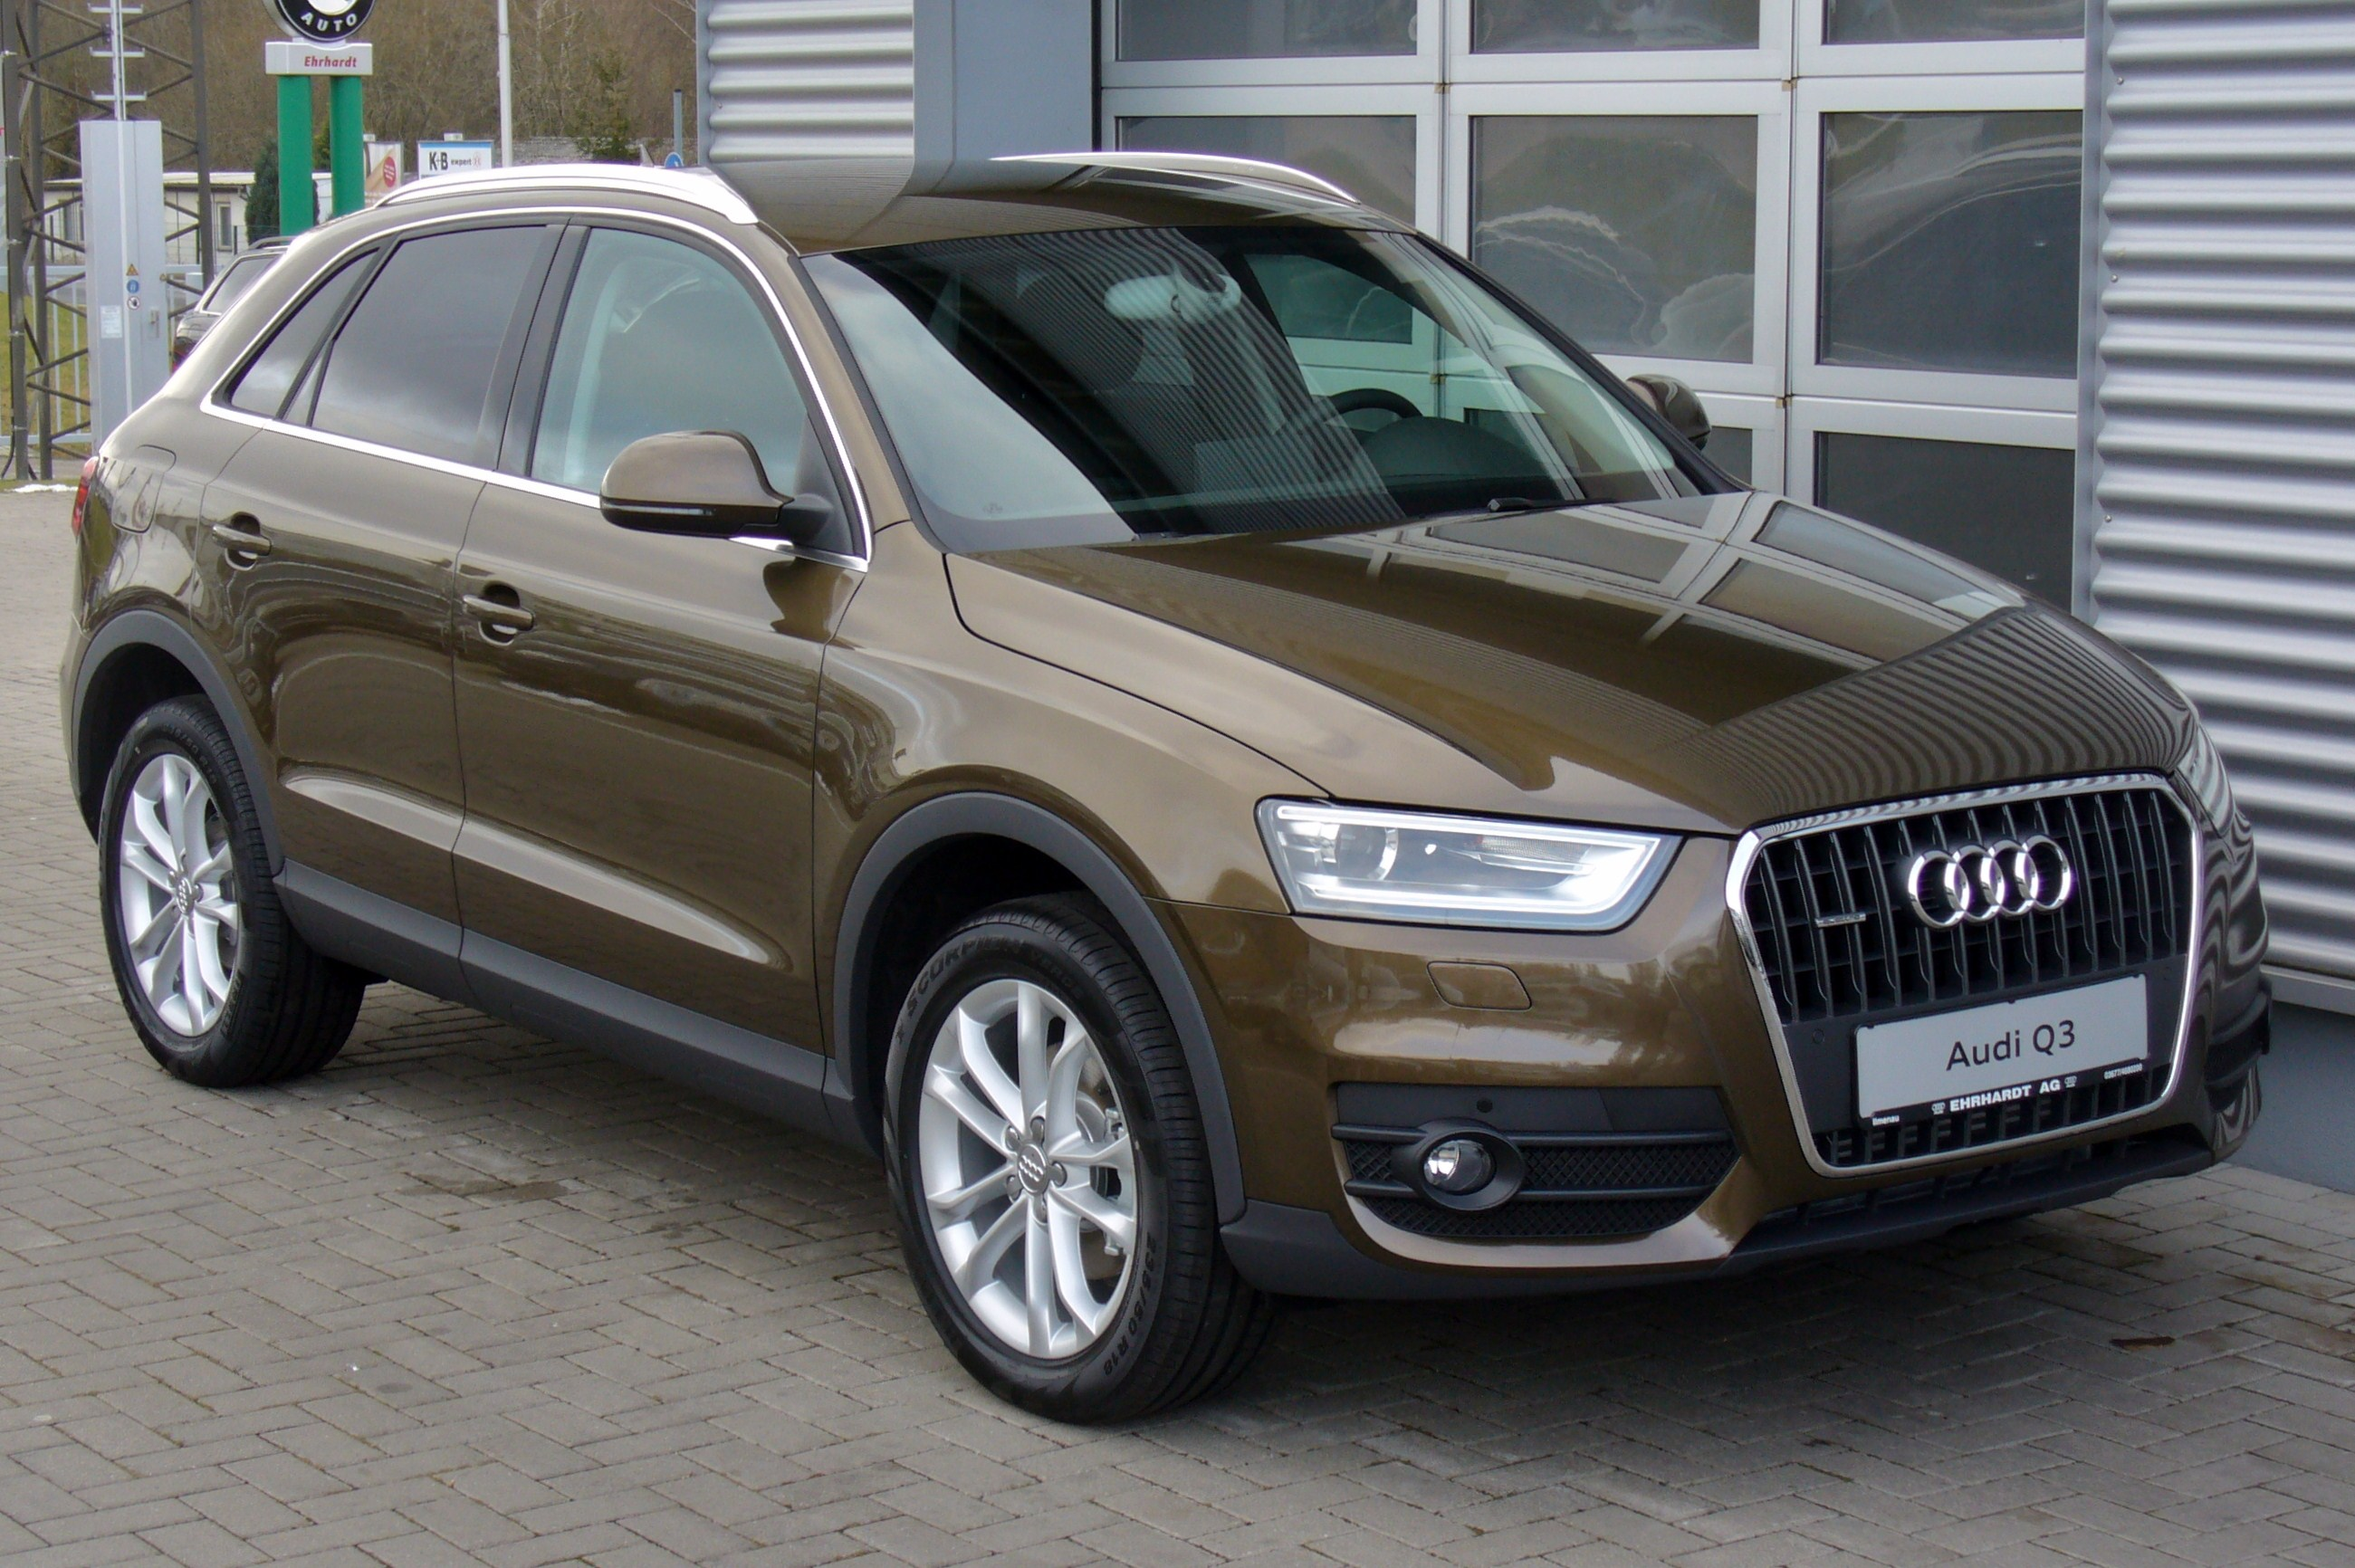 Audi Q3 1 High Quality Audi Q3 Pictures On Motorinfo Org